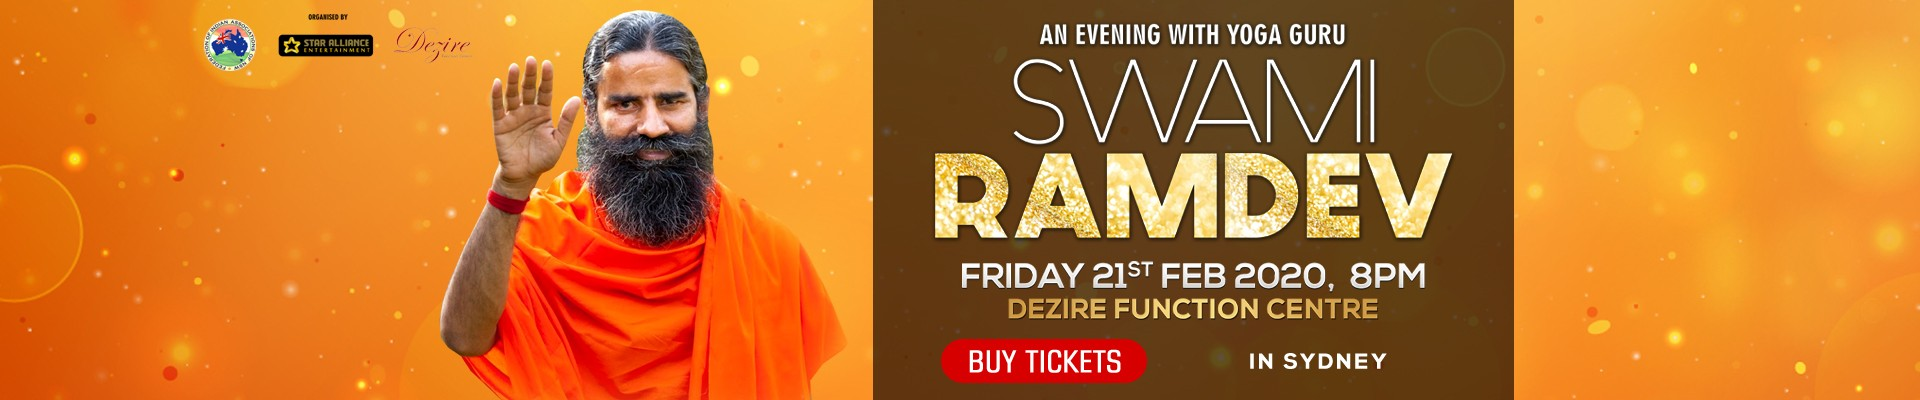 An Evening with Yoga Guru Swami Ramdev